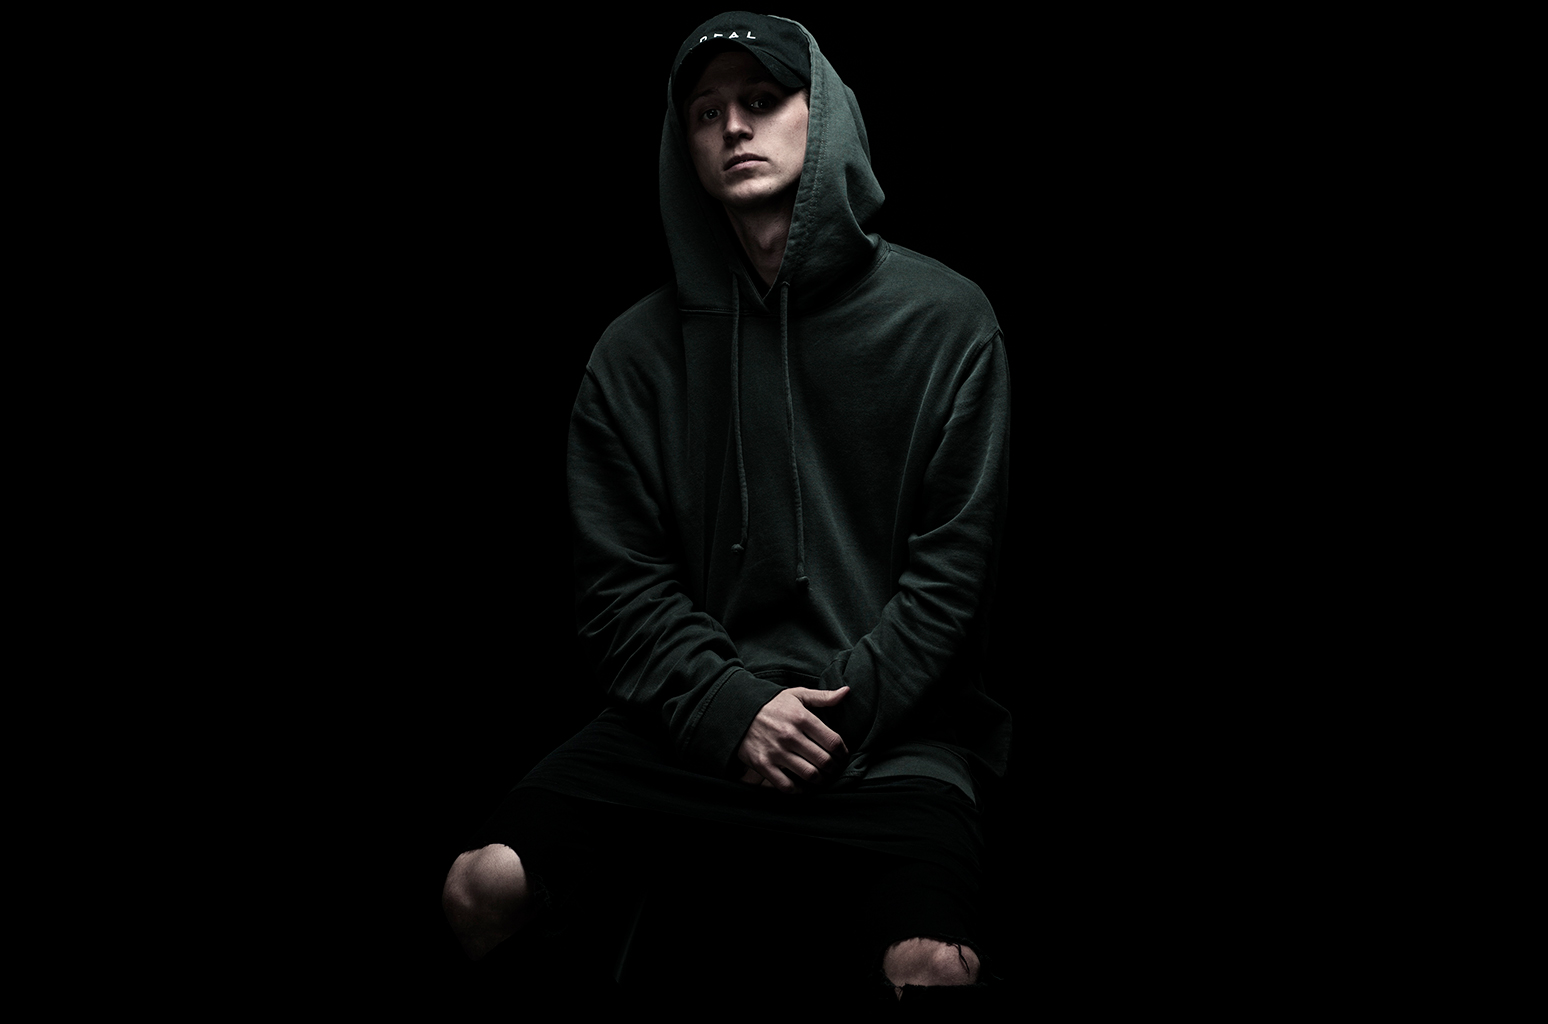 NF to join Logic and Kyle on tour this summer